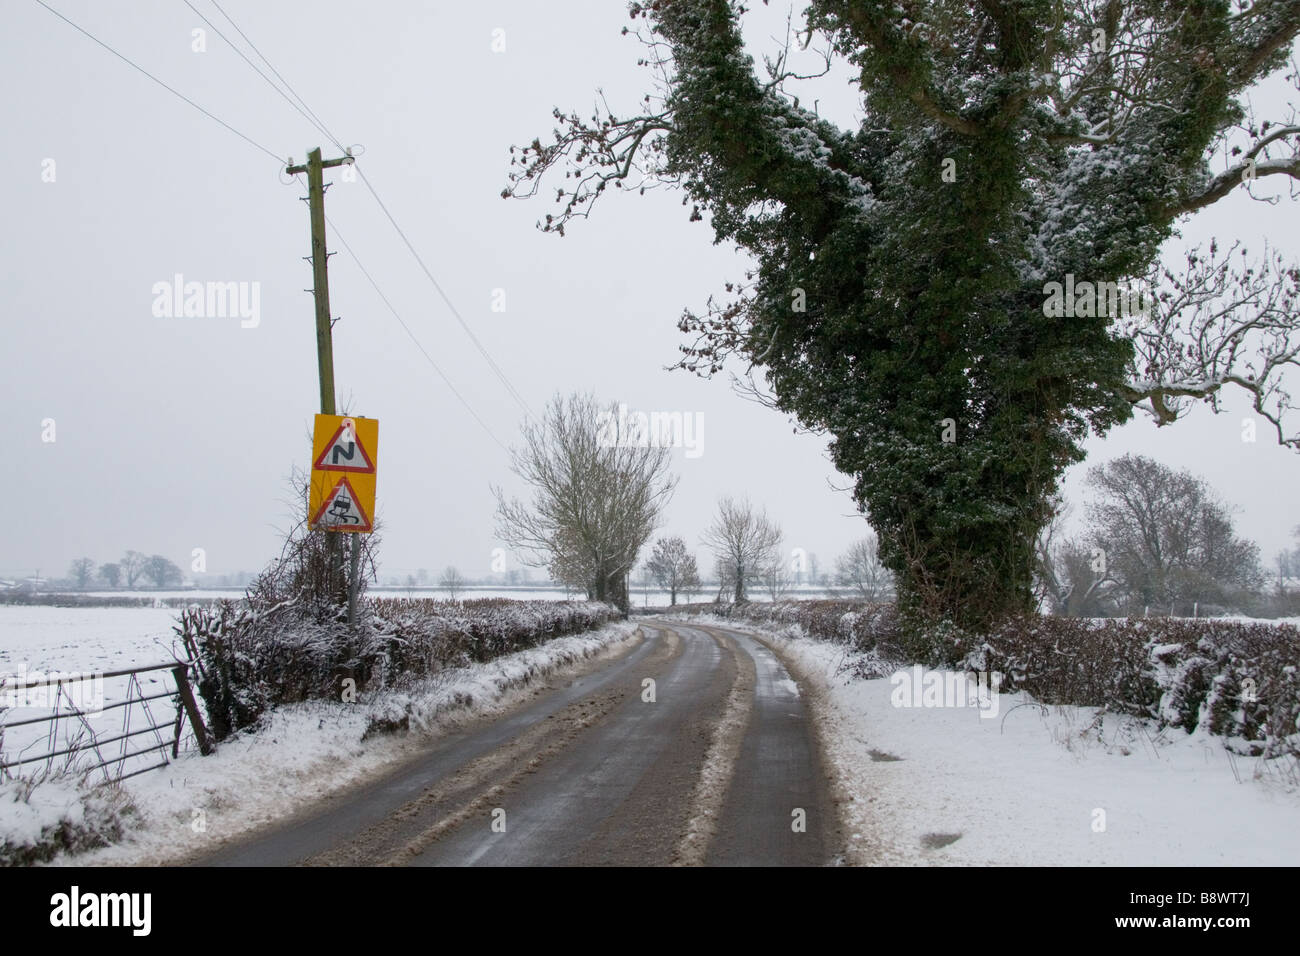 A snowy minor road with slippery surface sign: Somerset, England, UK - Stock Image